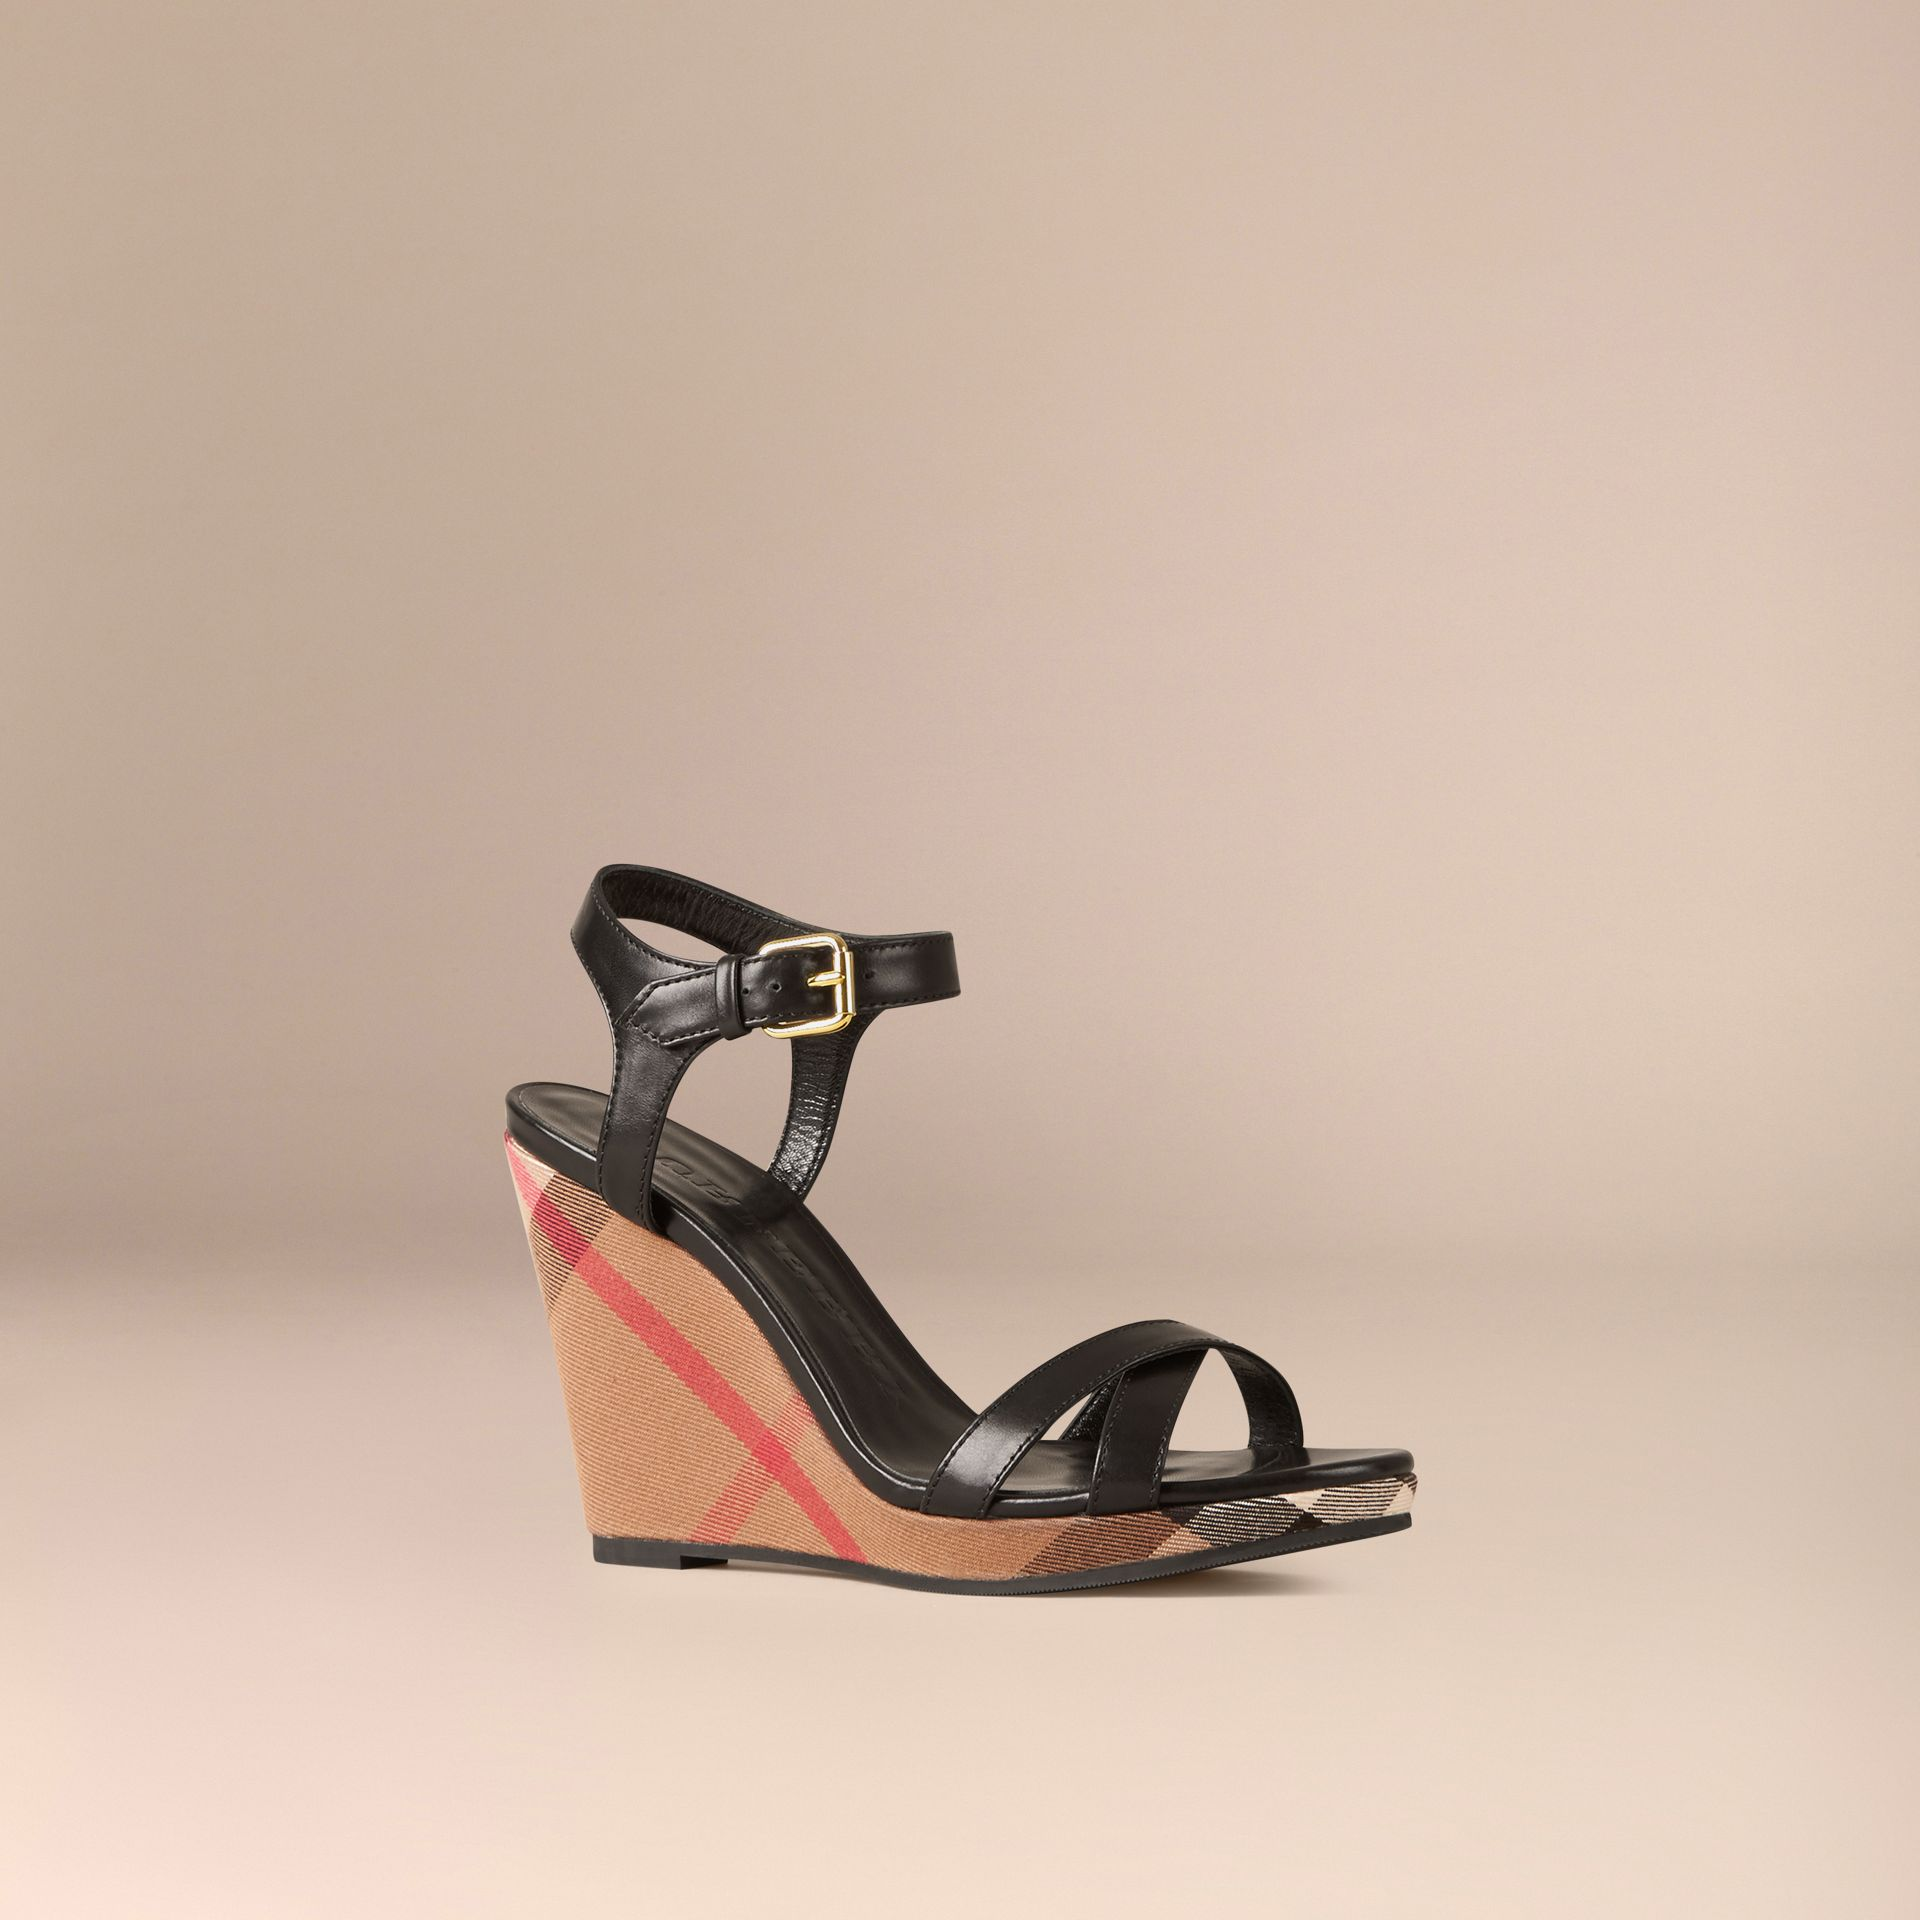 House Check and Leather Wedge Sandals in Black - Women | Burberry Australia - gallery image 1